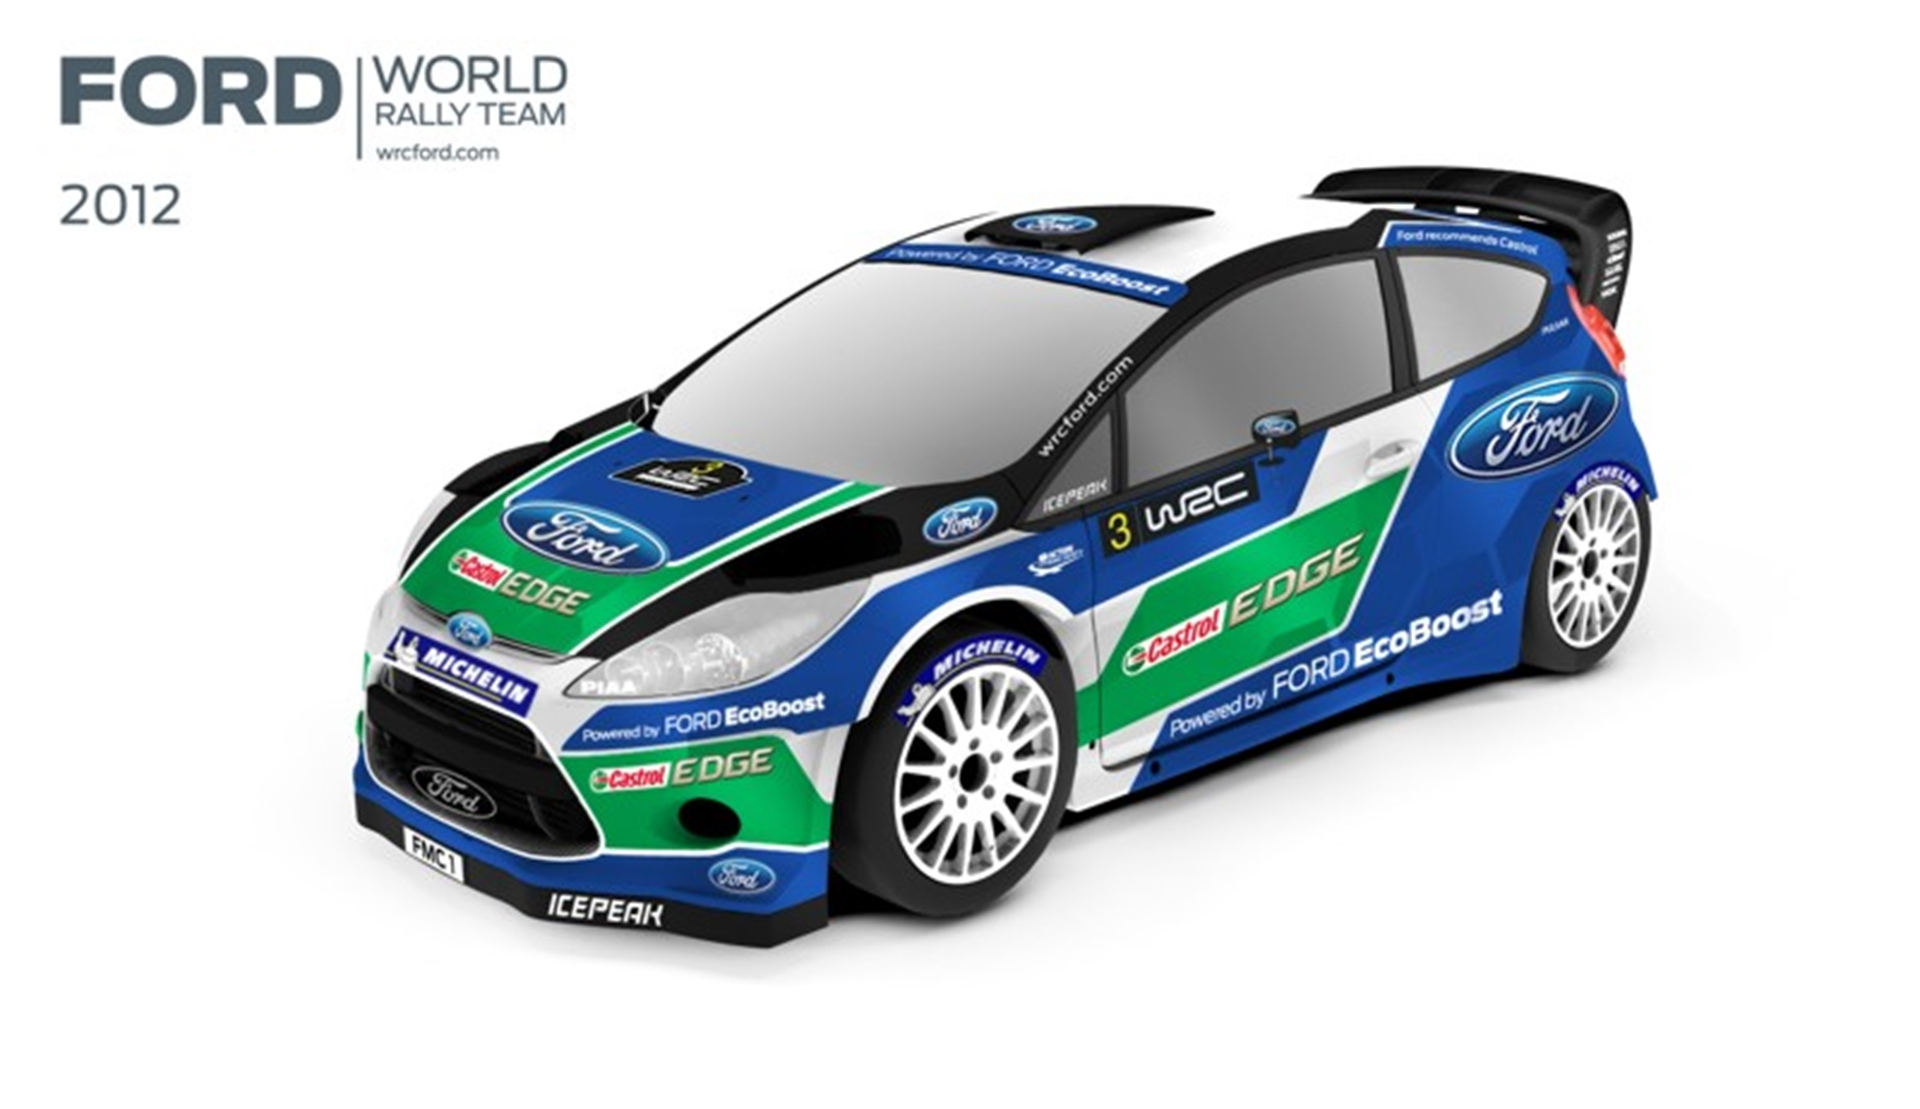 The Fiesta RS World Rally Car in its 2012 livery